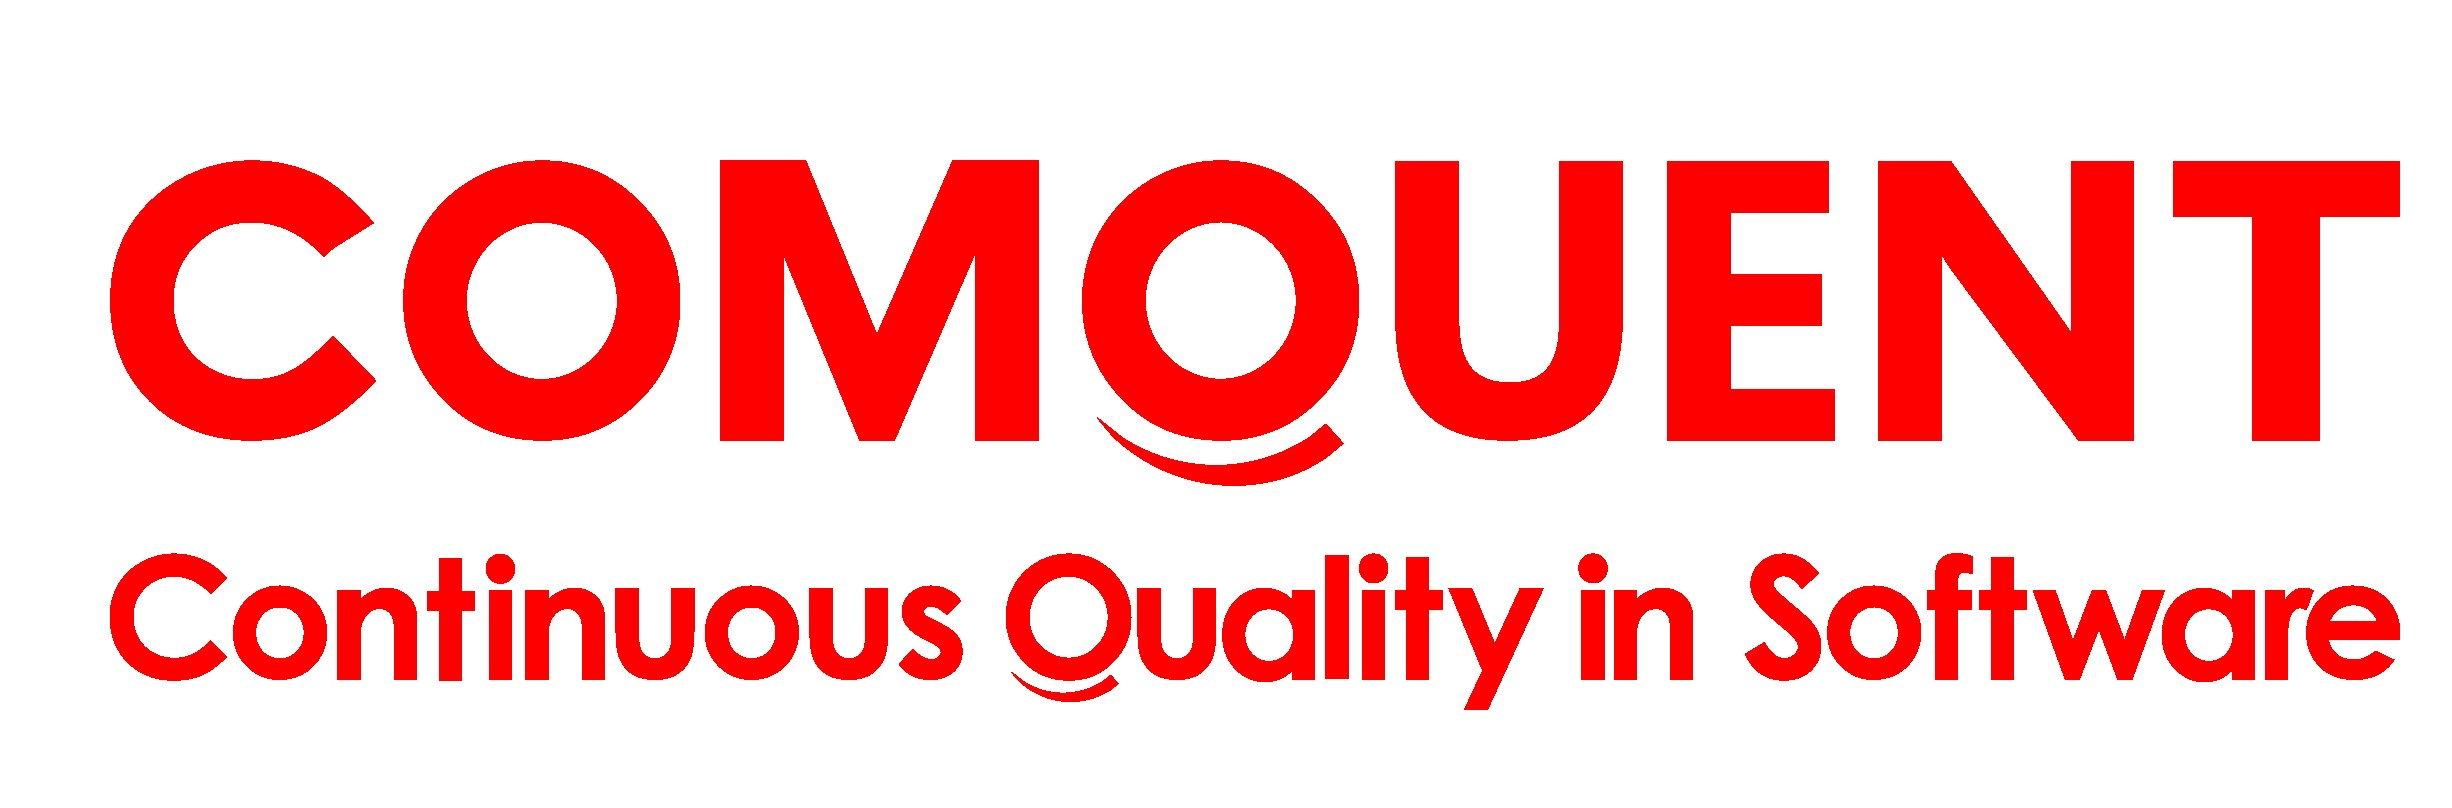 Comquent GmbH, Continuous Quality in Software